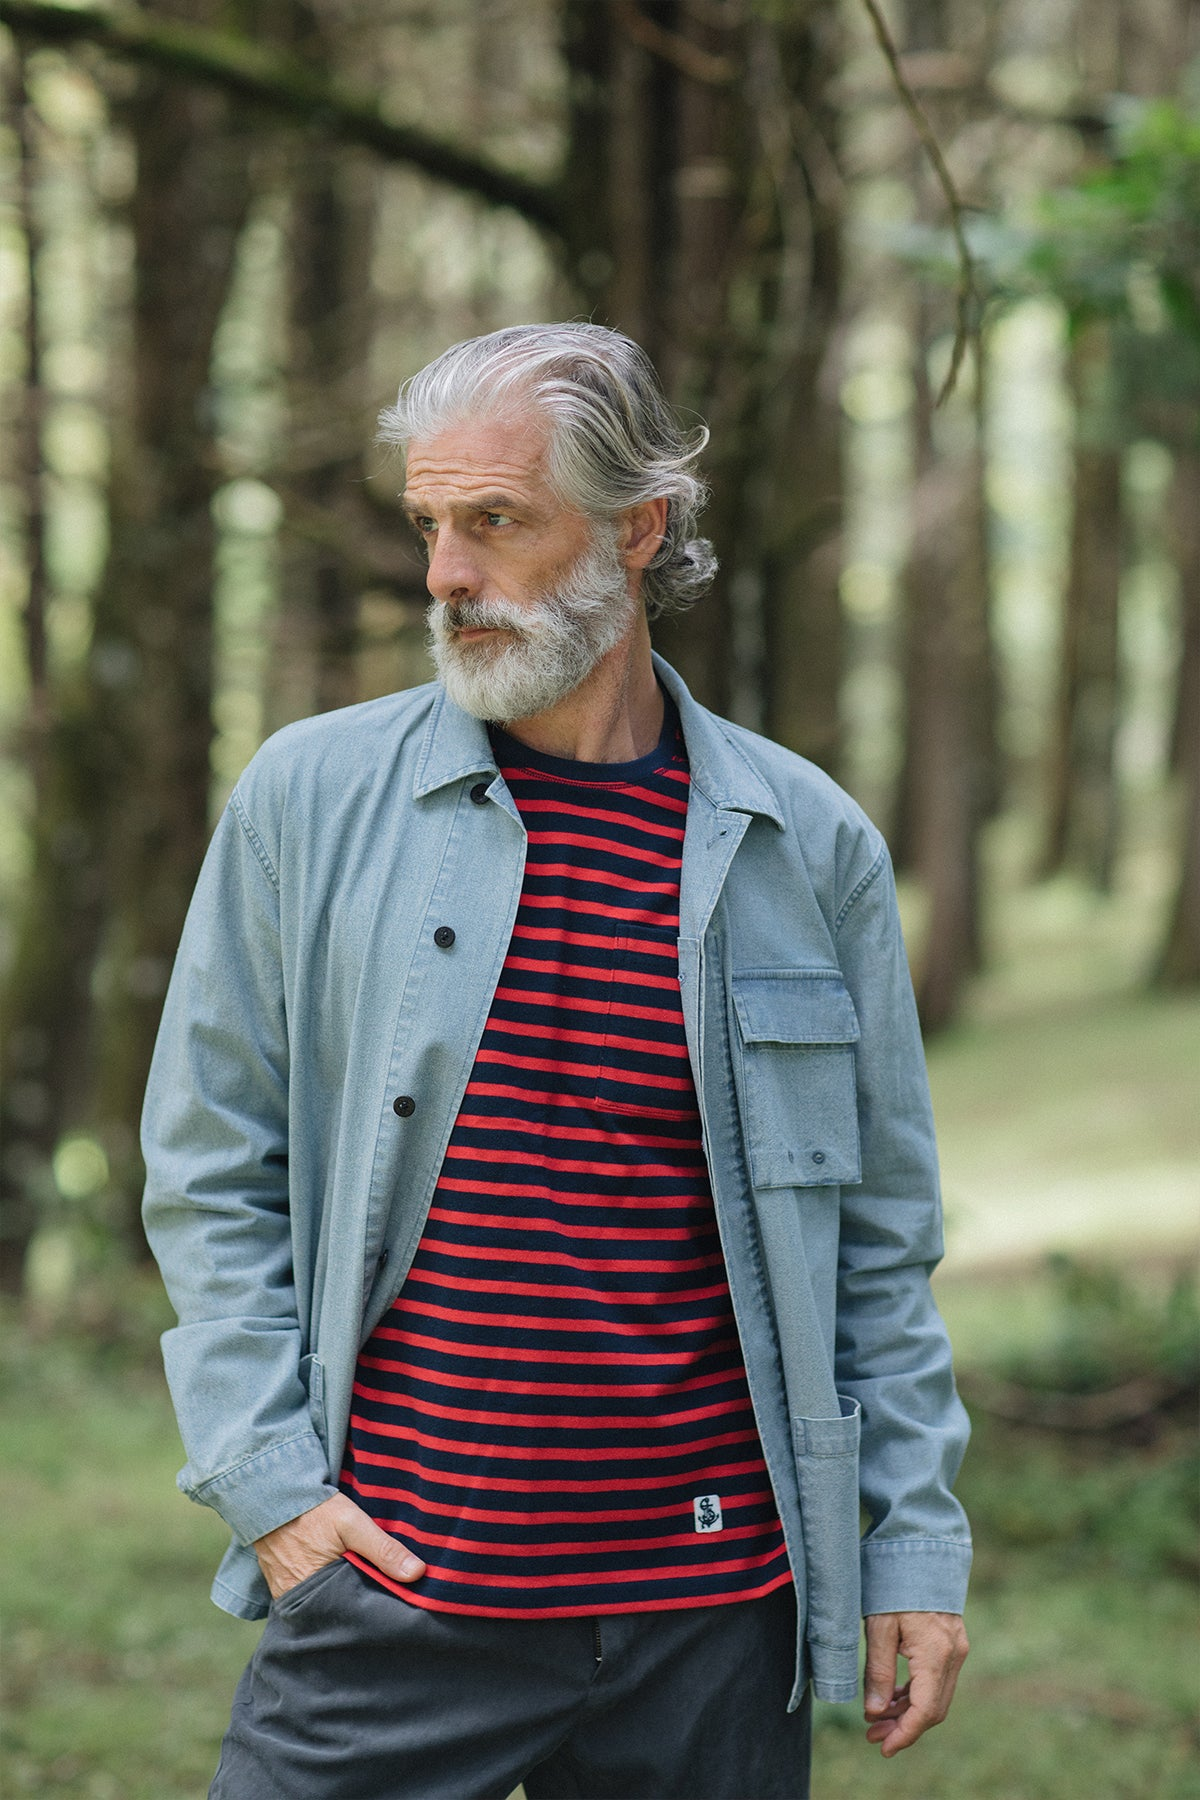 Mariner Knit Shirt in Red/Navy